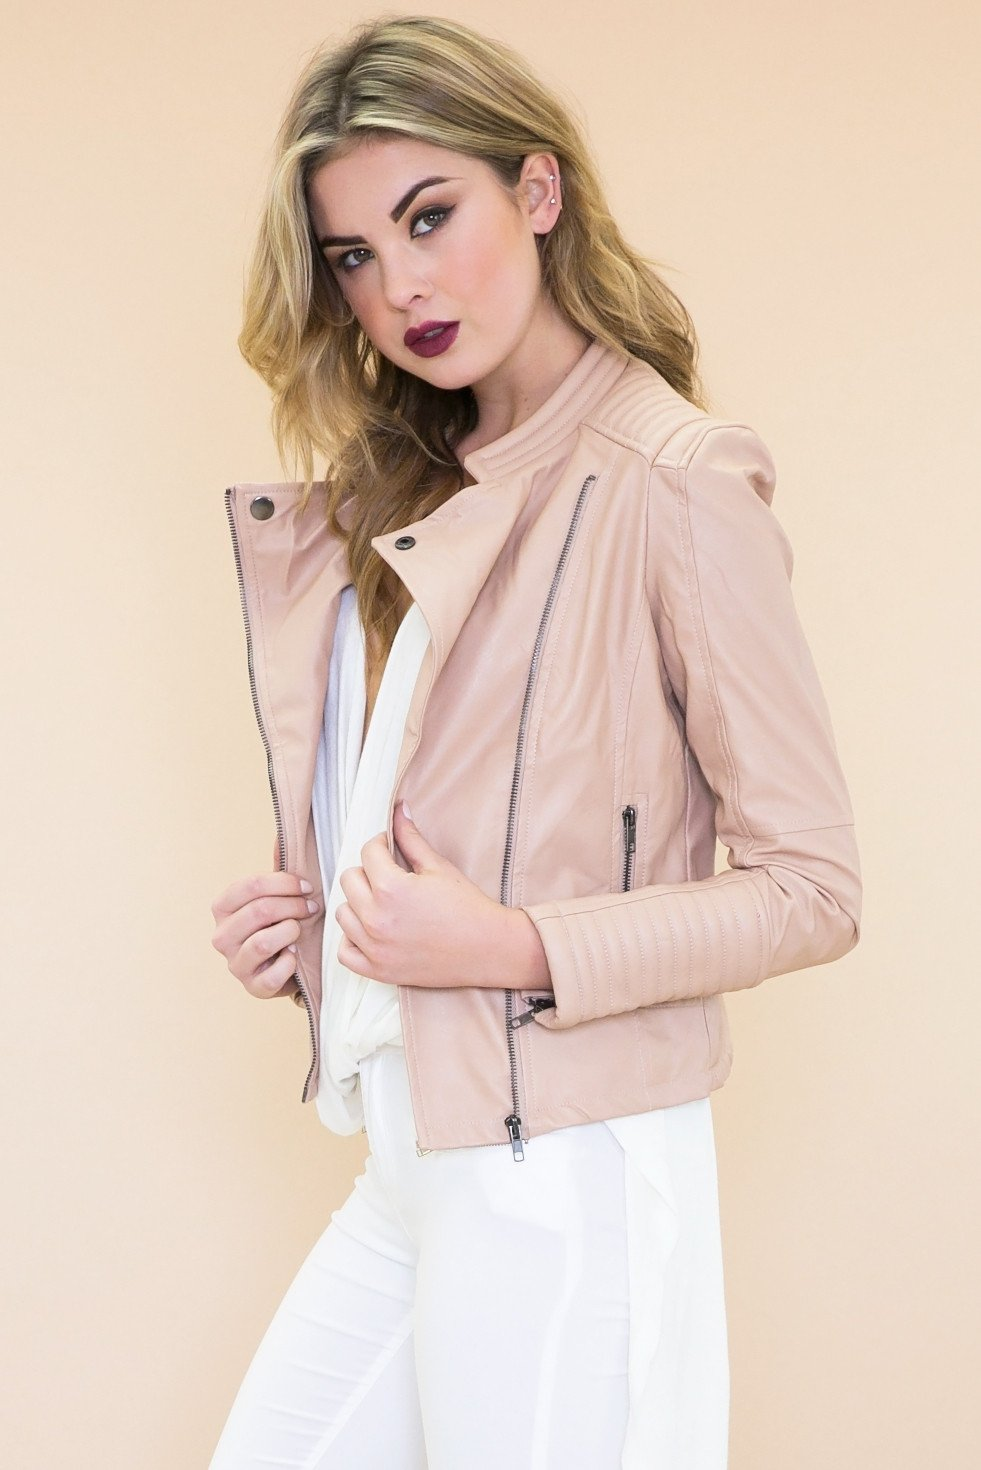 Janet Padded Leather Motorcycle Jacket - Blush - Haute & Rebellious